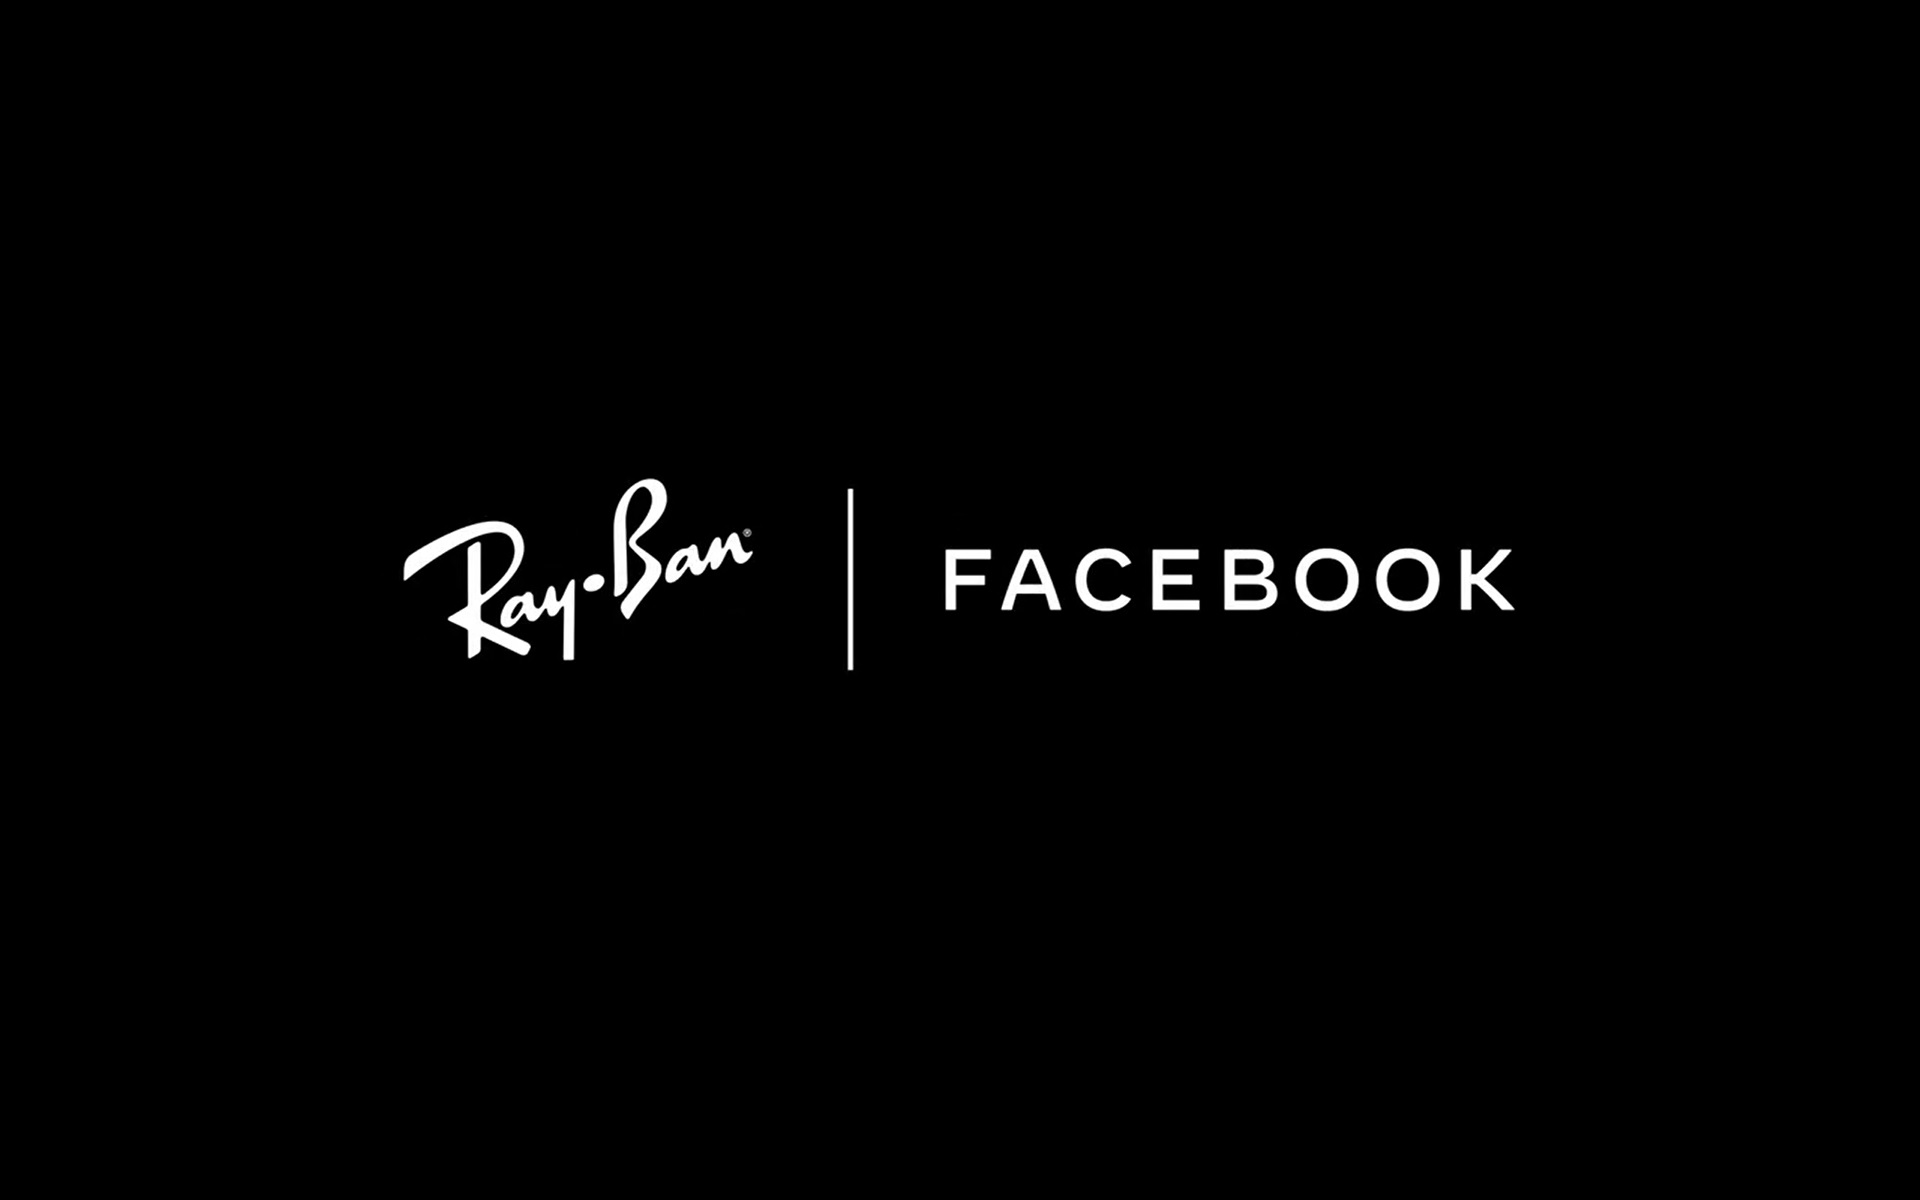 Ray-Ban Facebook Smart Glasses 2021